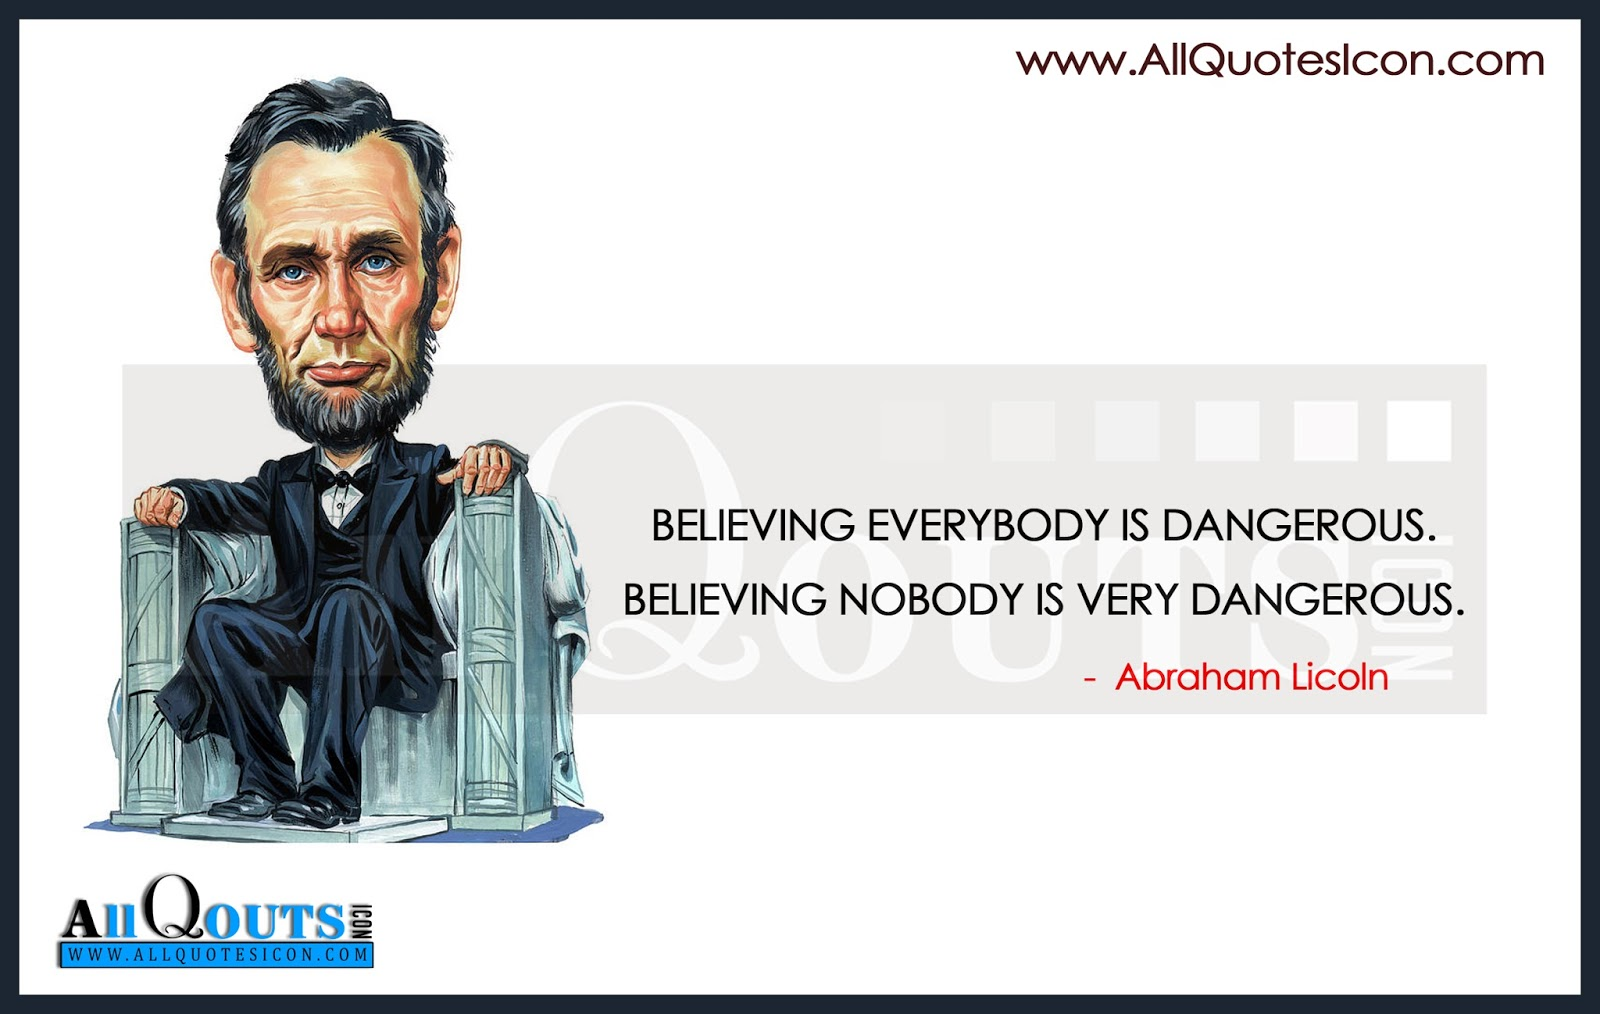 Abraham Lincoln Quotes On Life Abraham Licoln Quotes English Life Quotations And Images Best